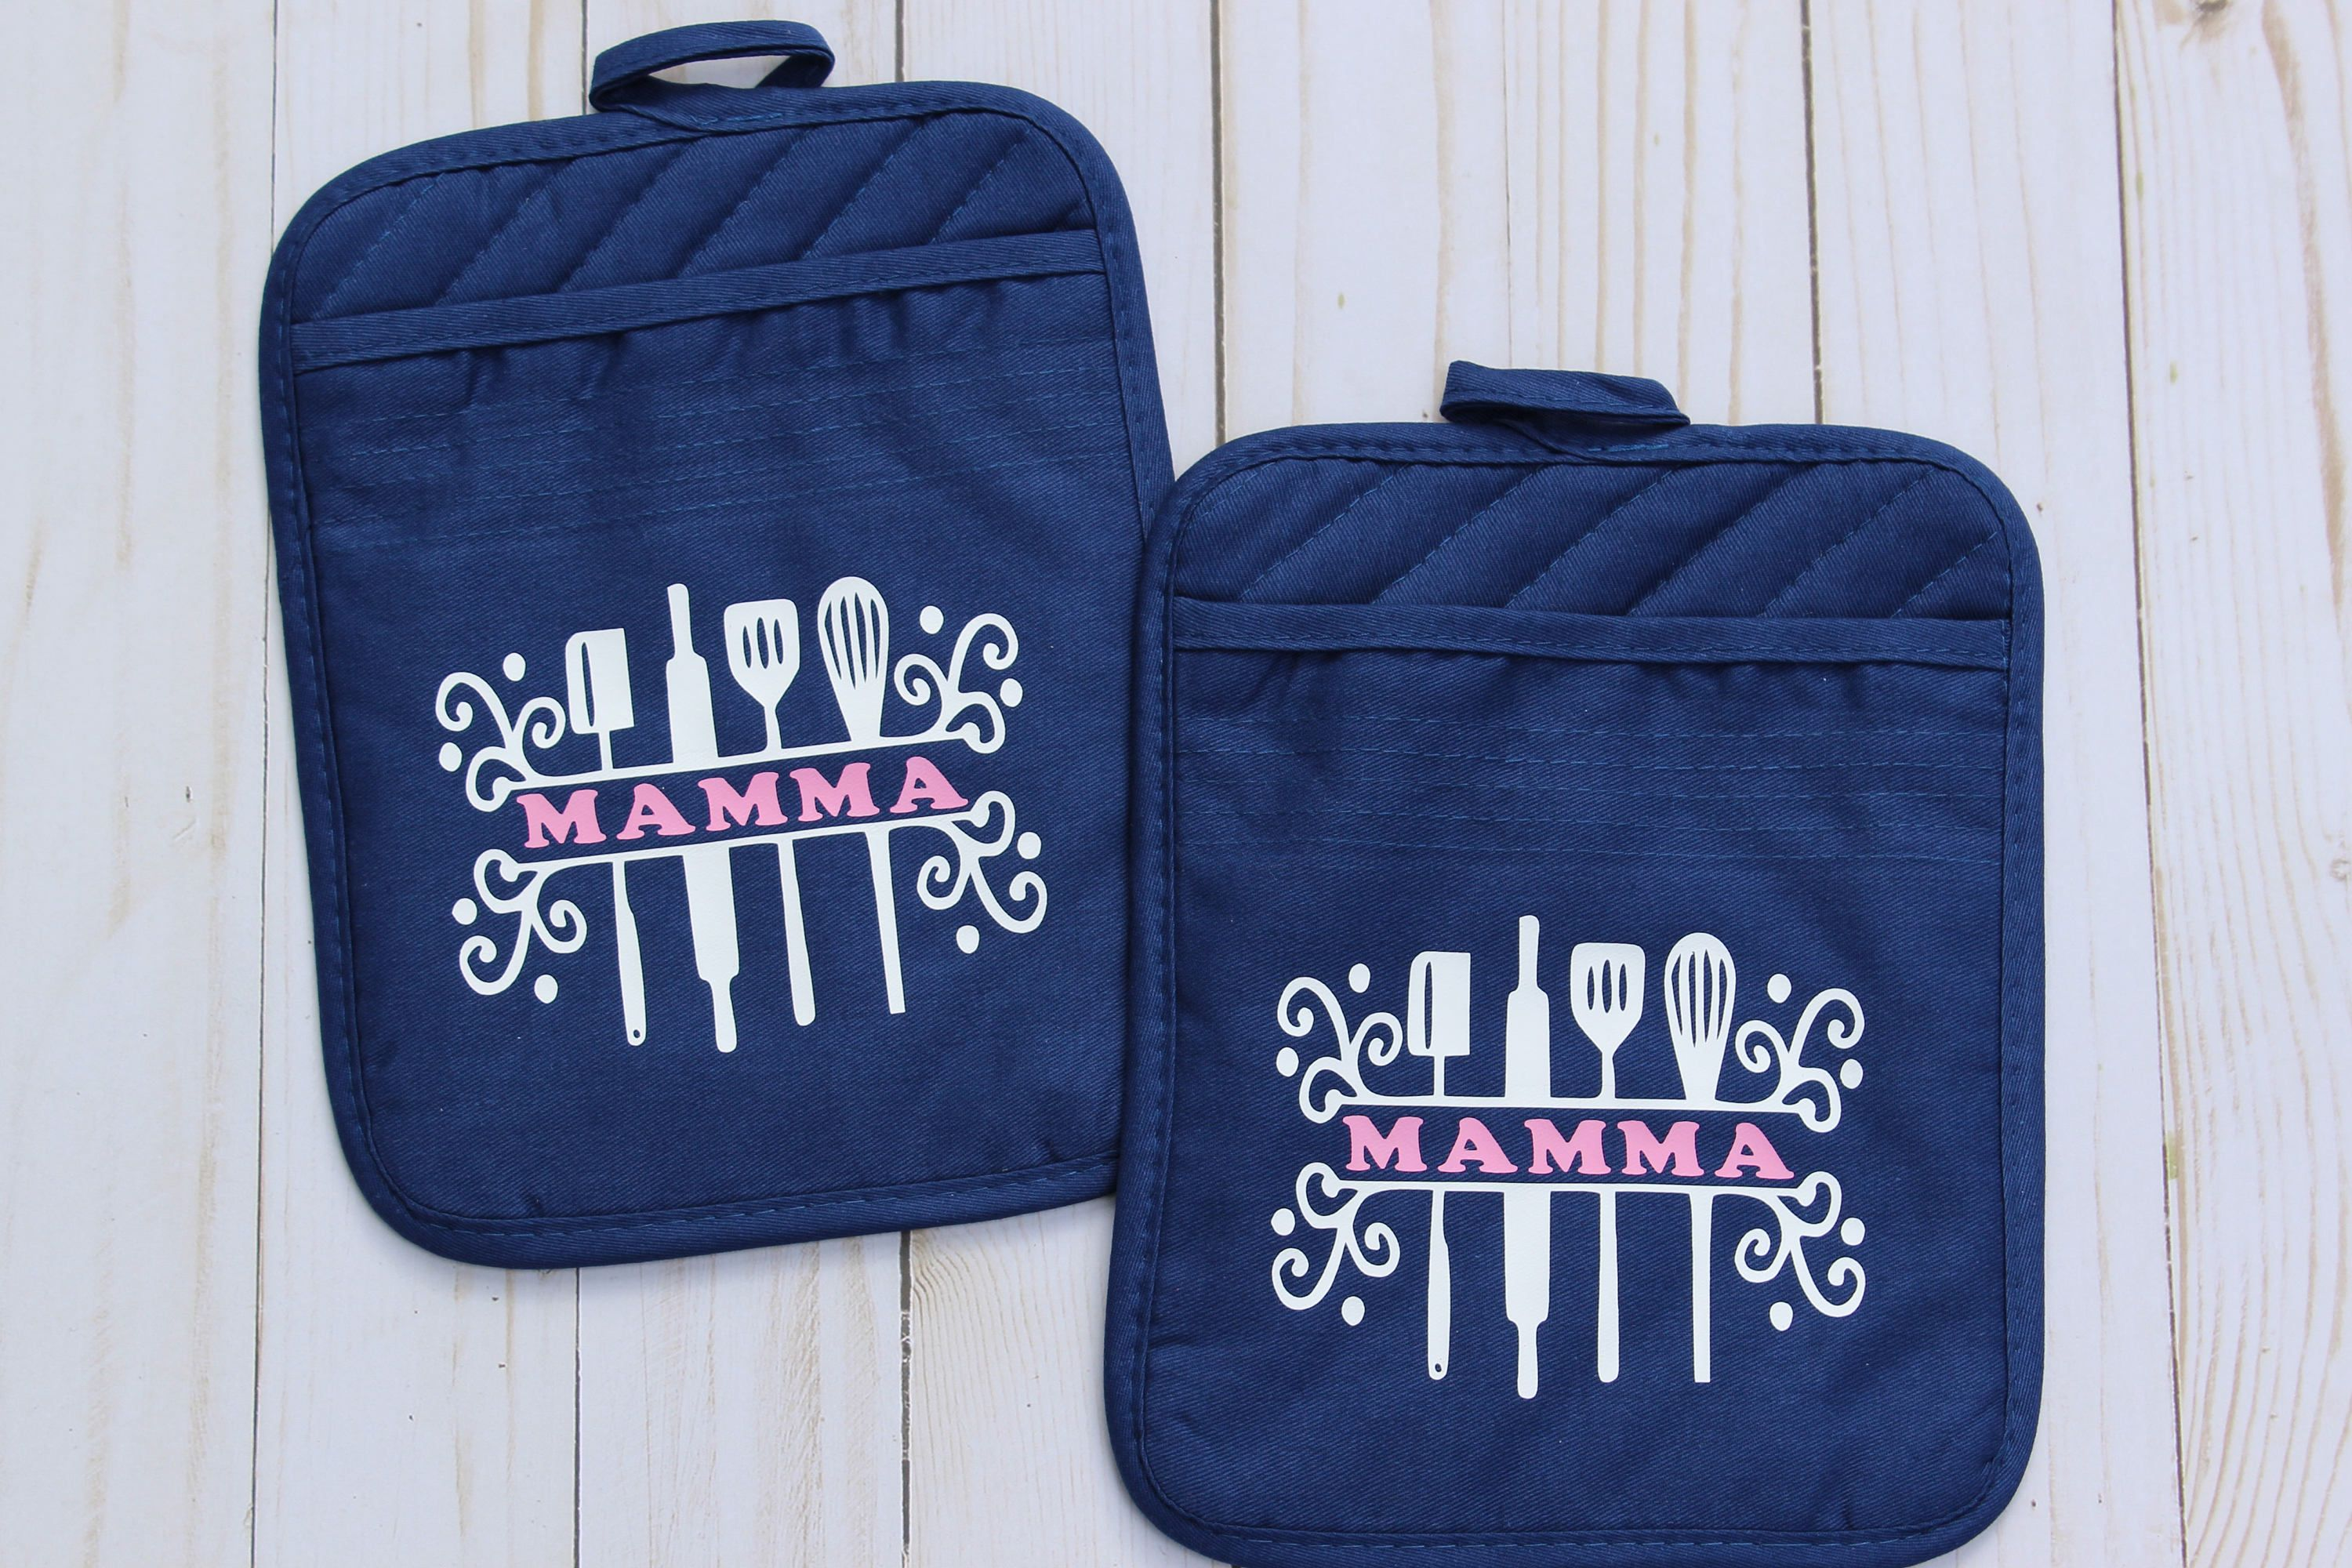 Personalized Oven Mitts Gifts For Mother In Law Monogrammed Etsy In 2020 Oven Mitts Gift Pot Holders Oven Mitts